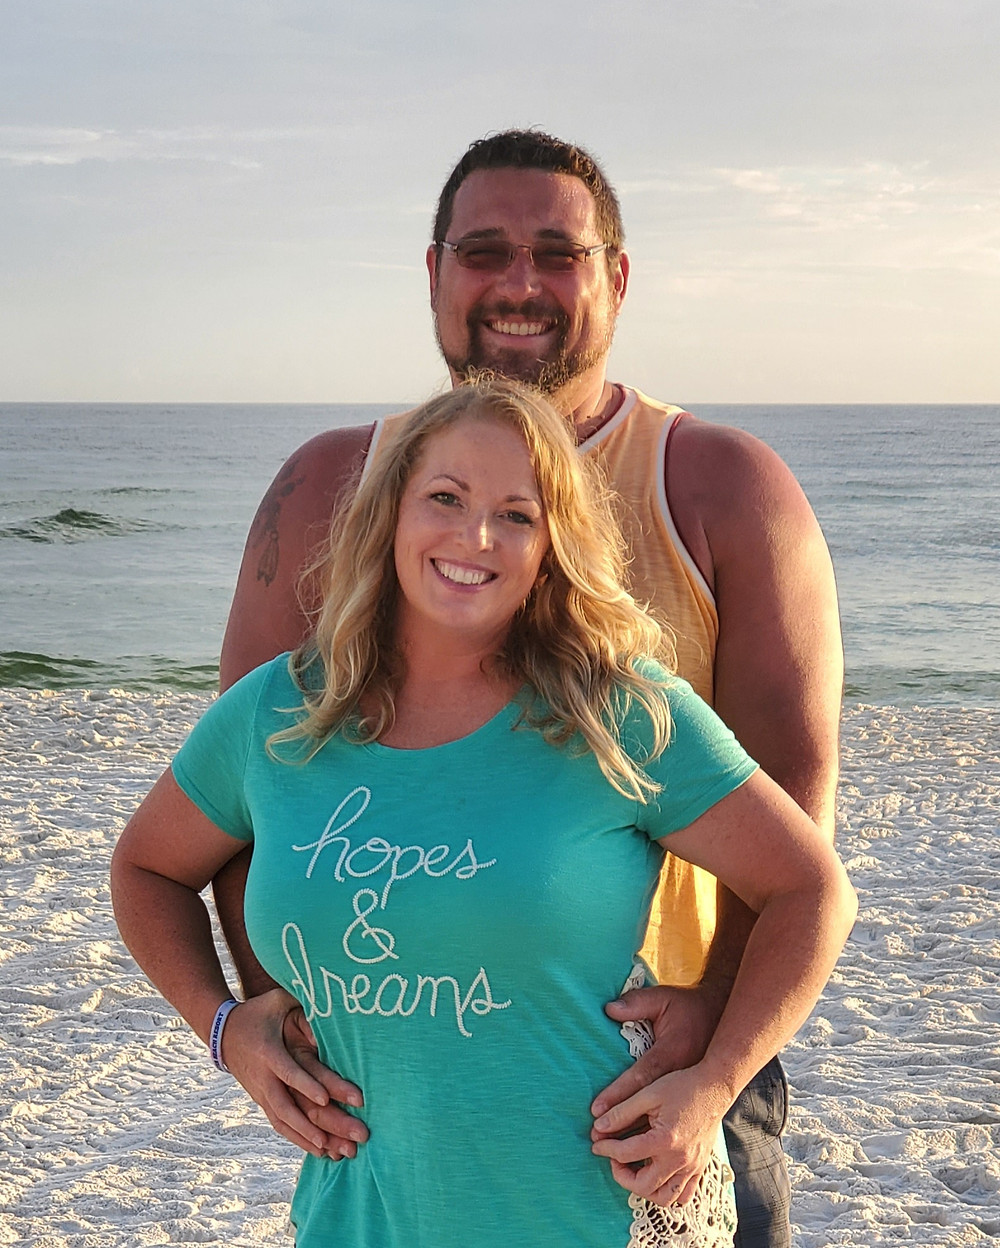 Picture of Eric and Tanya on the beach.